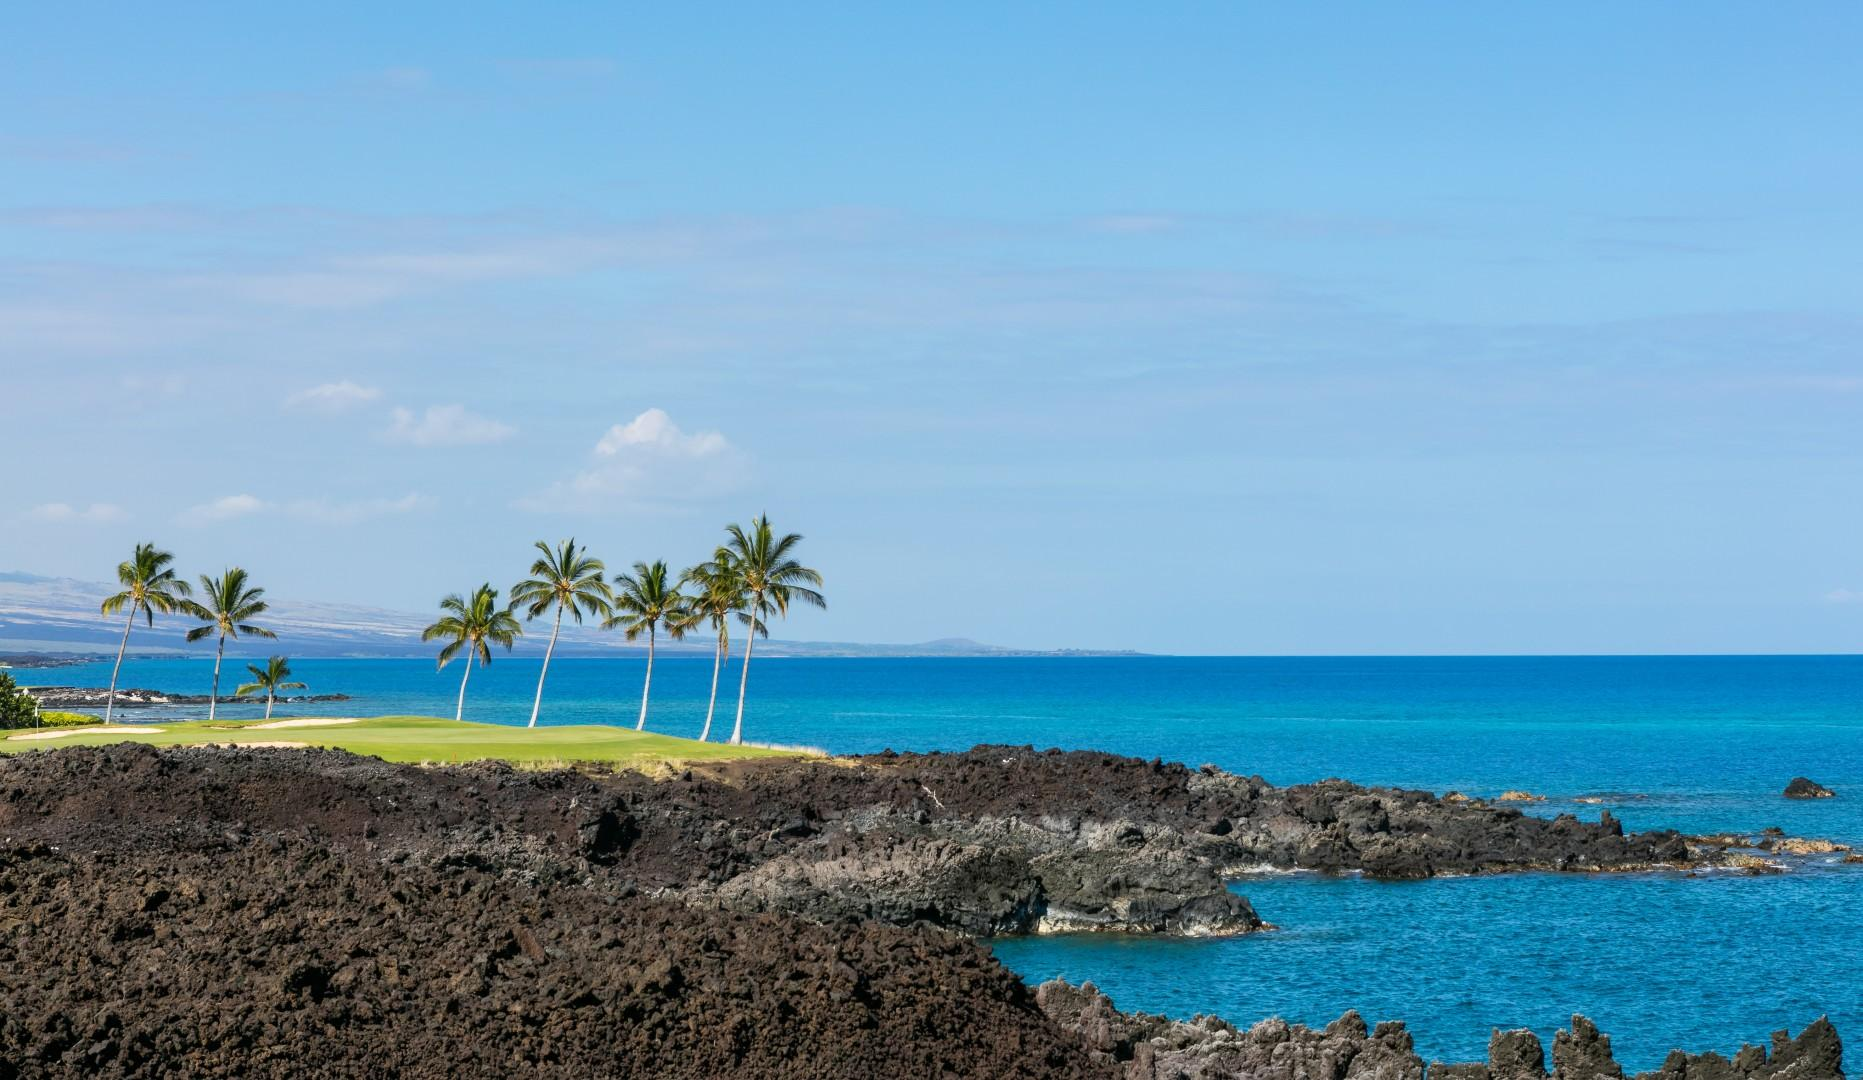 The coastline views from the resort are stunning. Nightly sunsets are enjoyed by all.